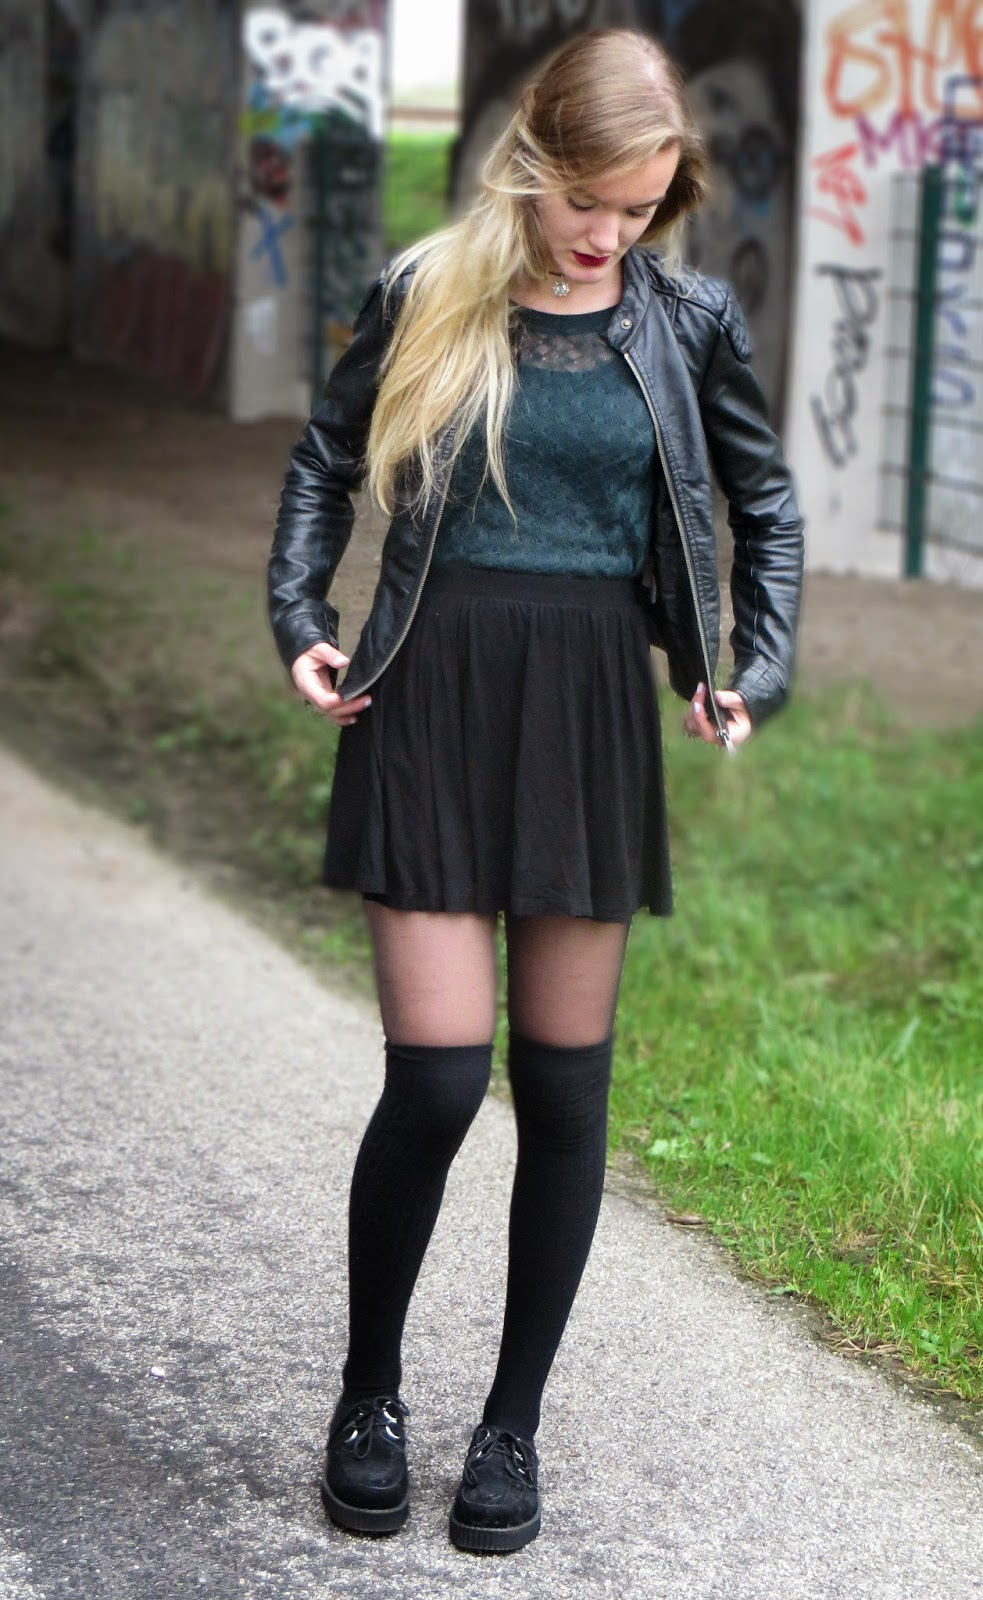 outfit with leather jacket and creepers